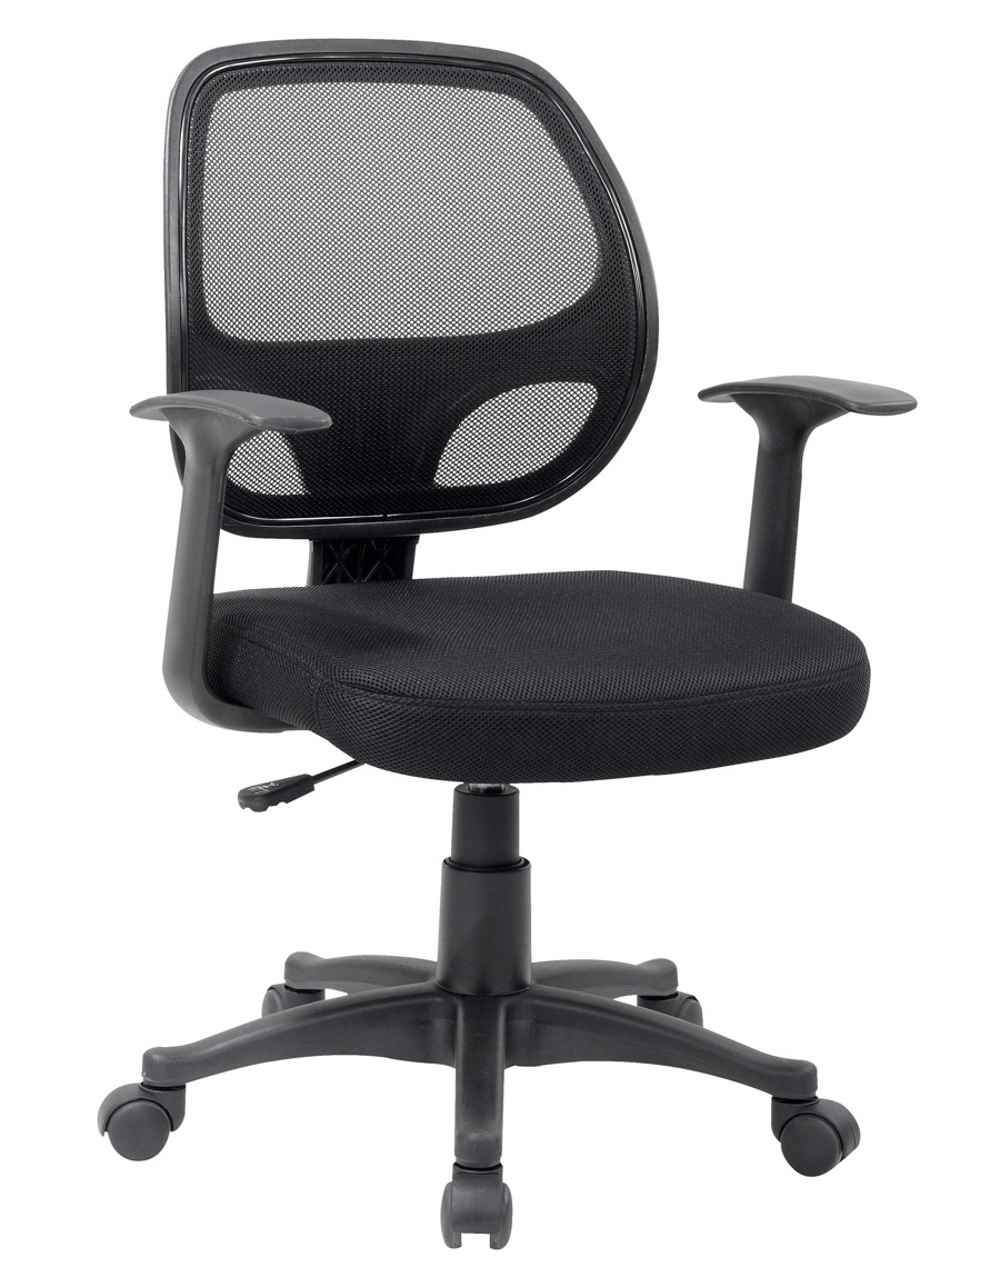 Ergonomic Black Mesh Computer Chair with Arms